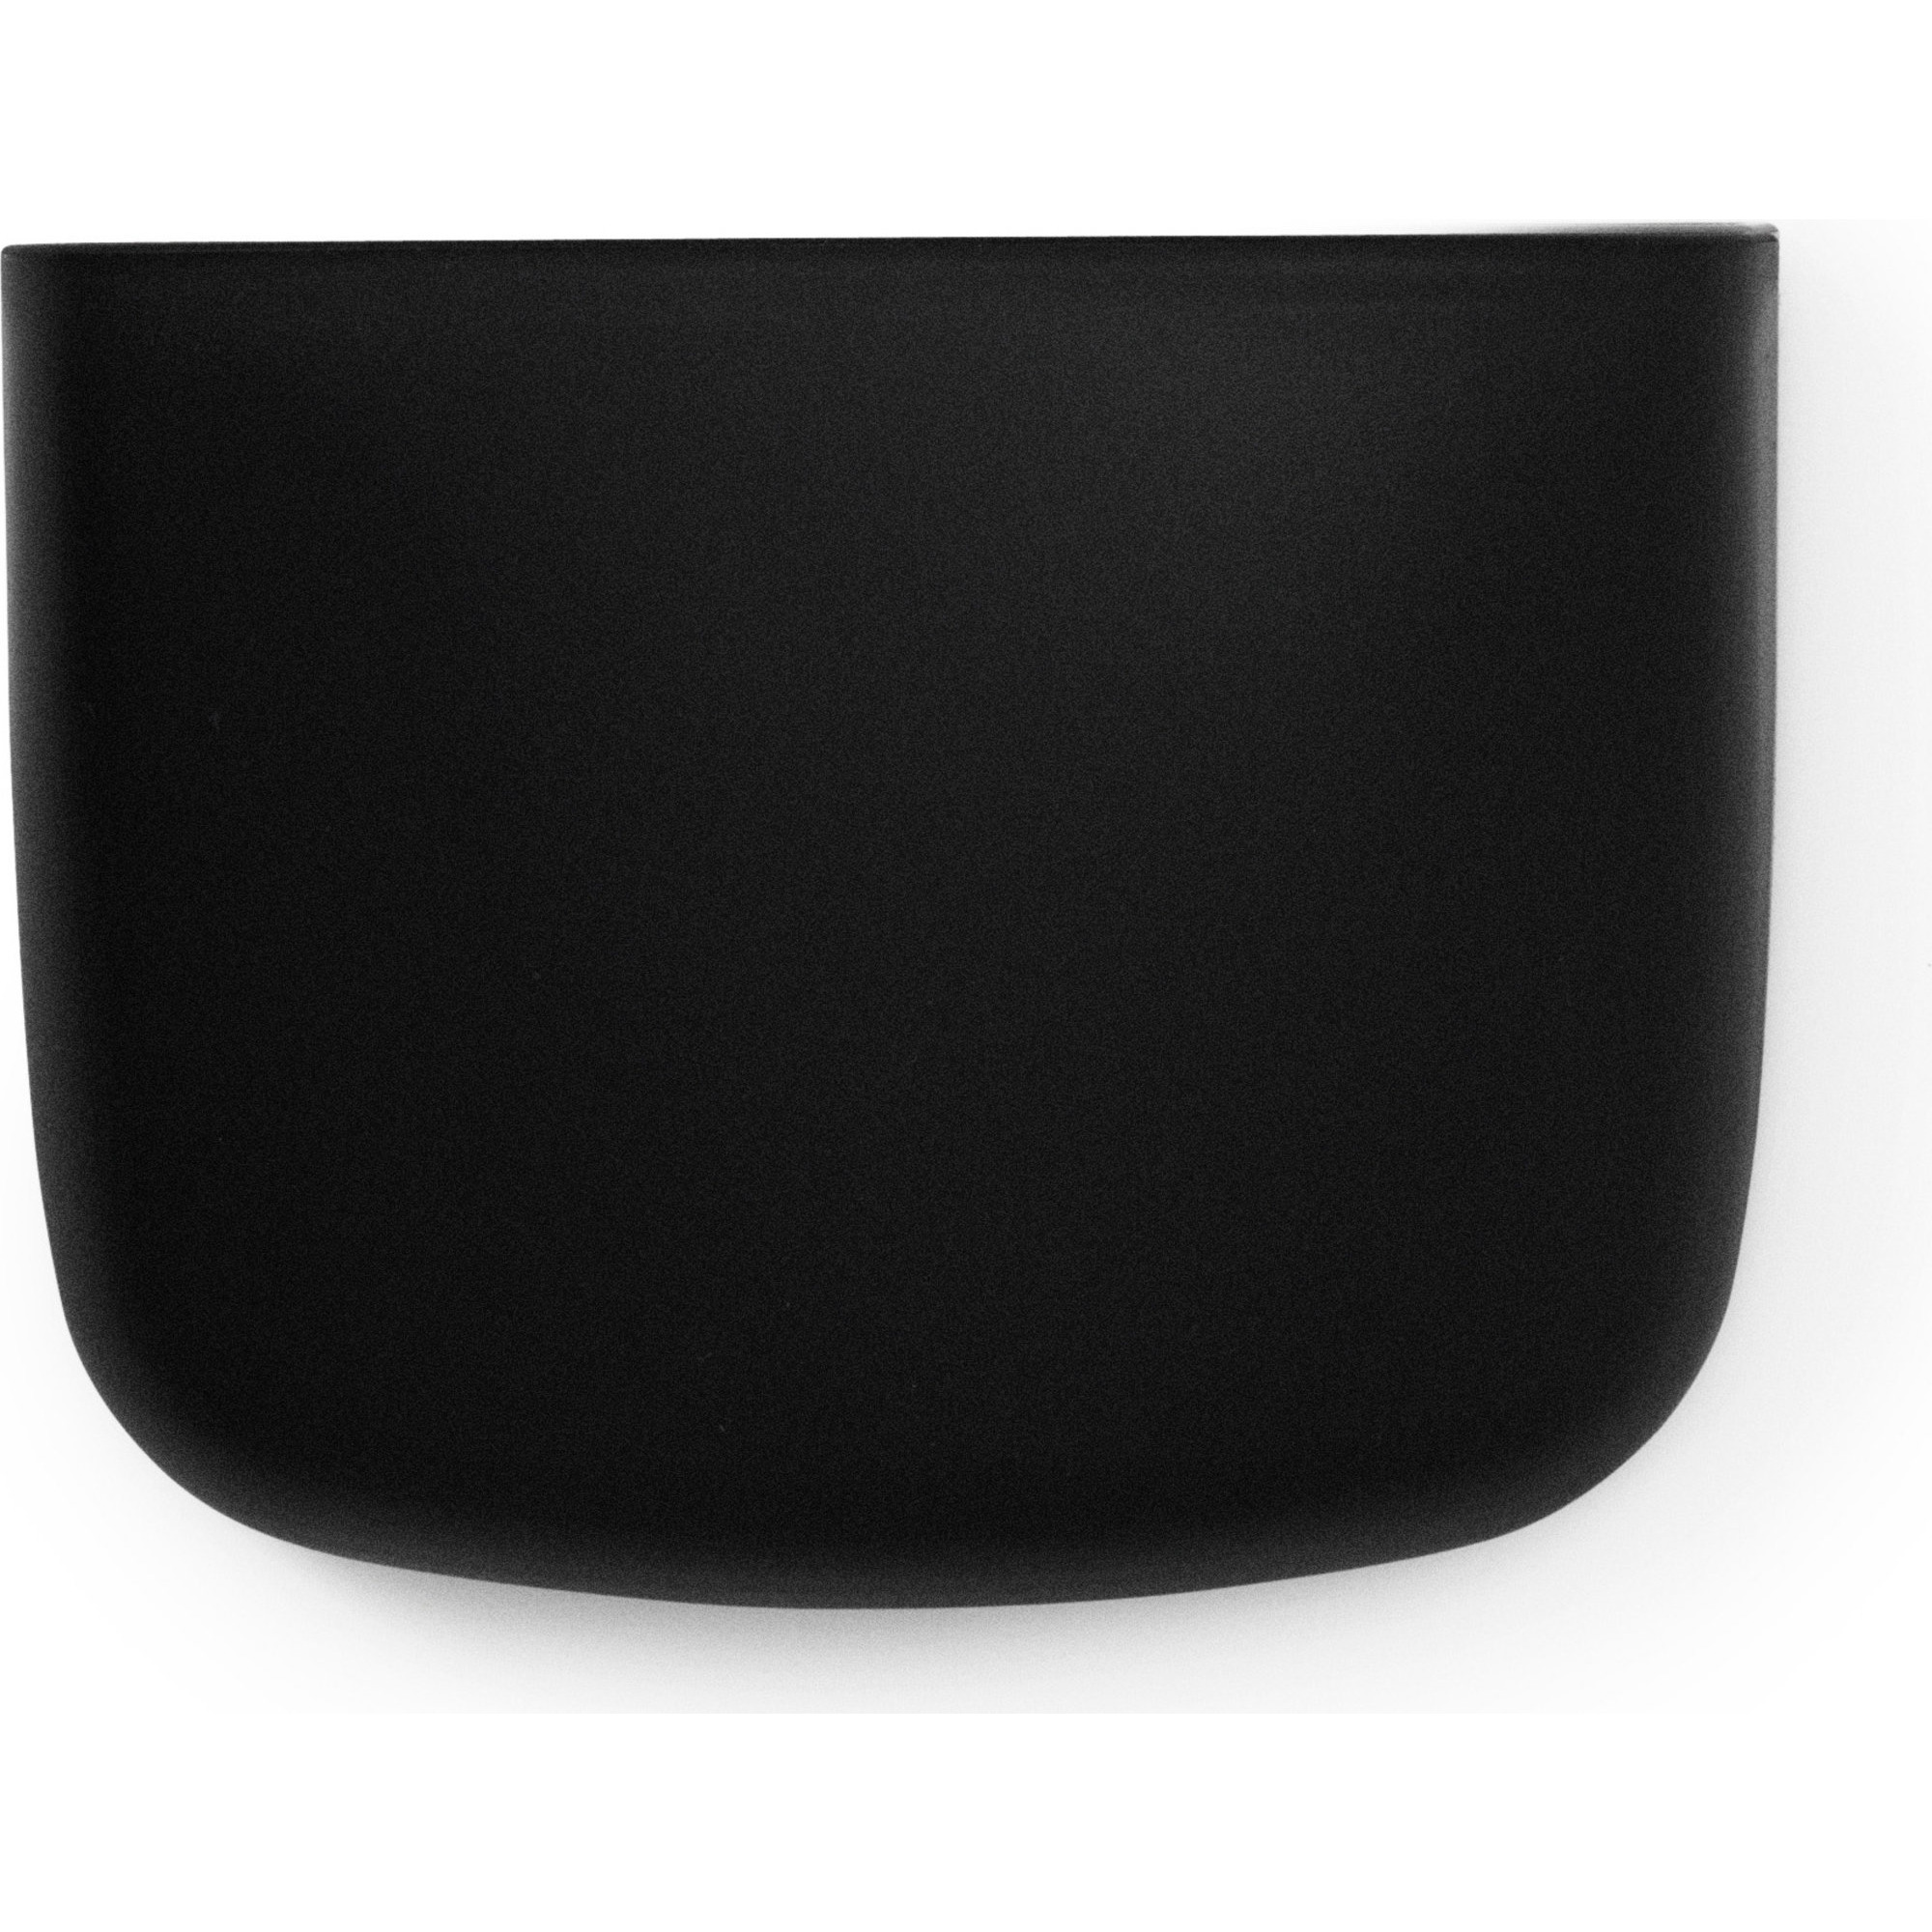 Normann Copenhagen Pocket Organizer 2 Black